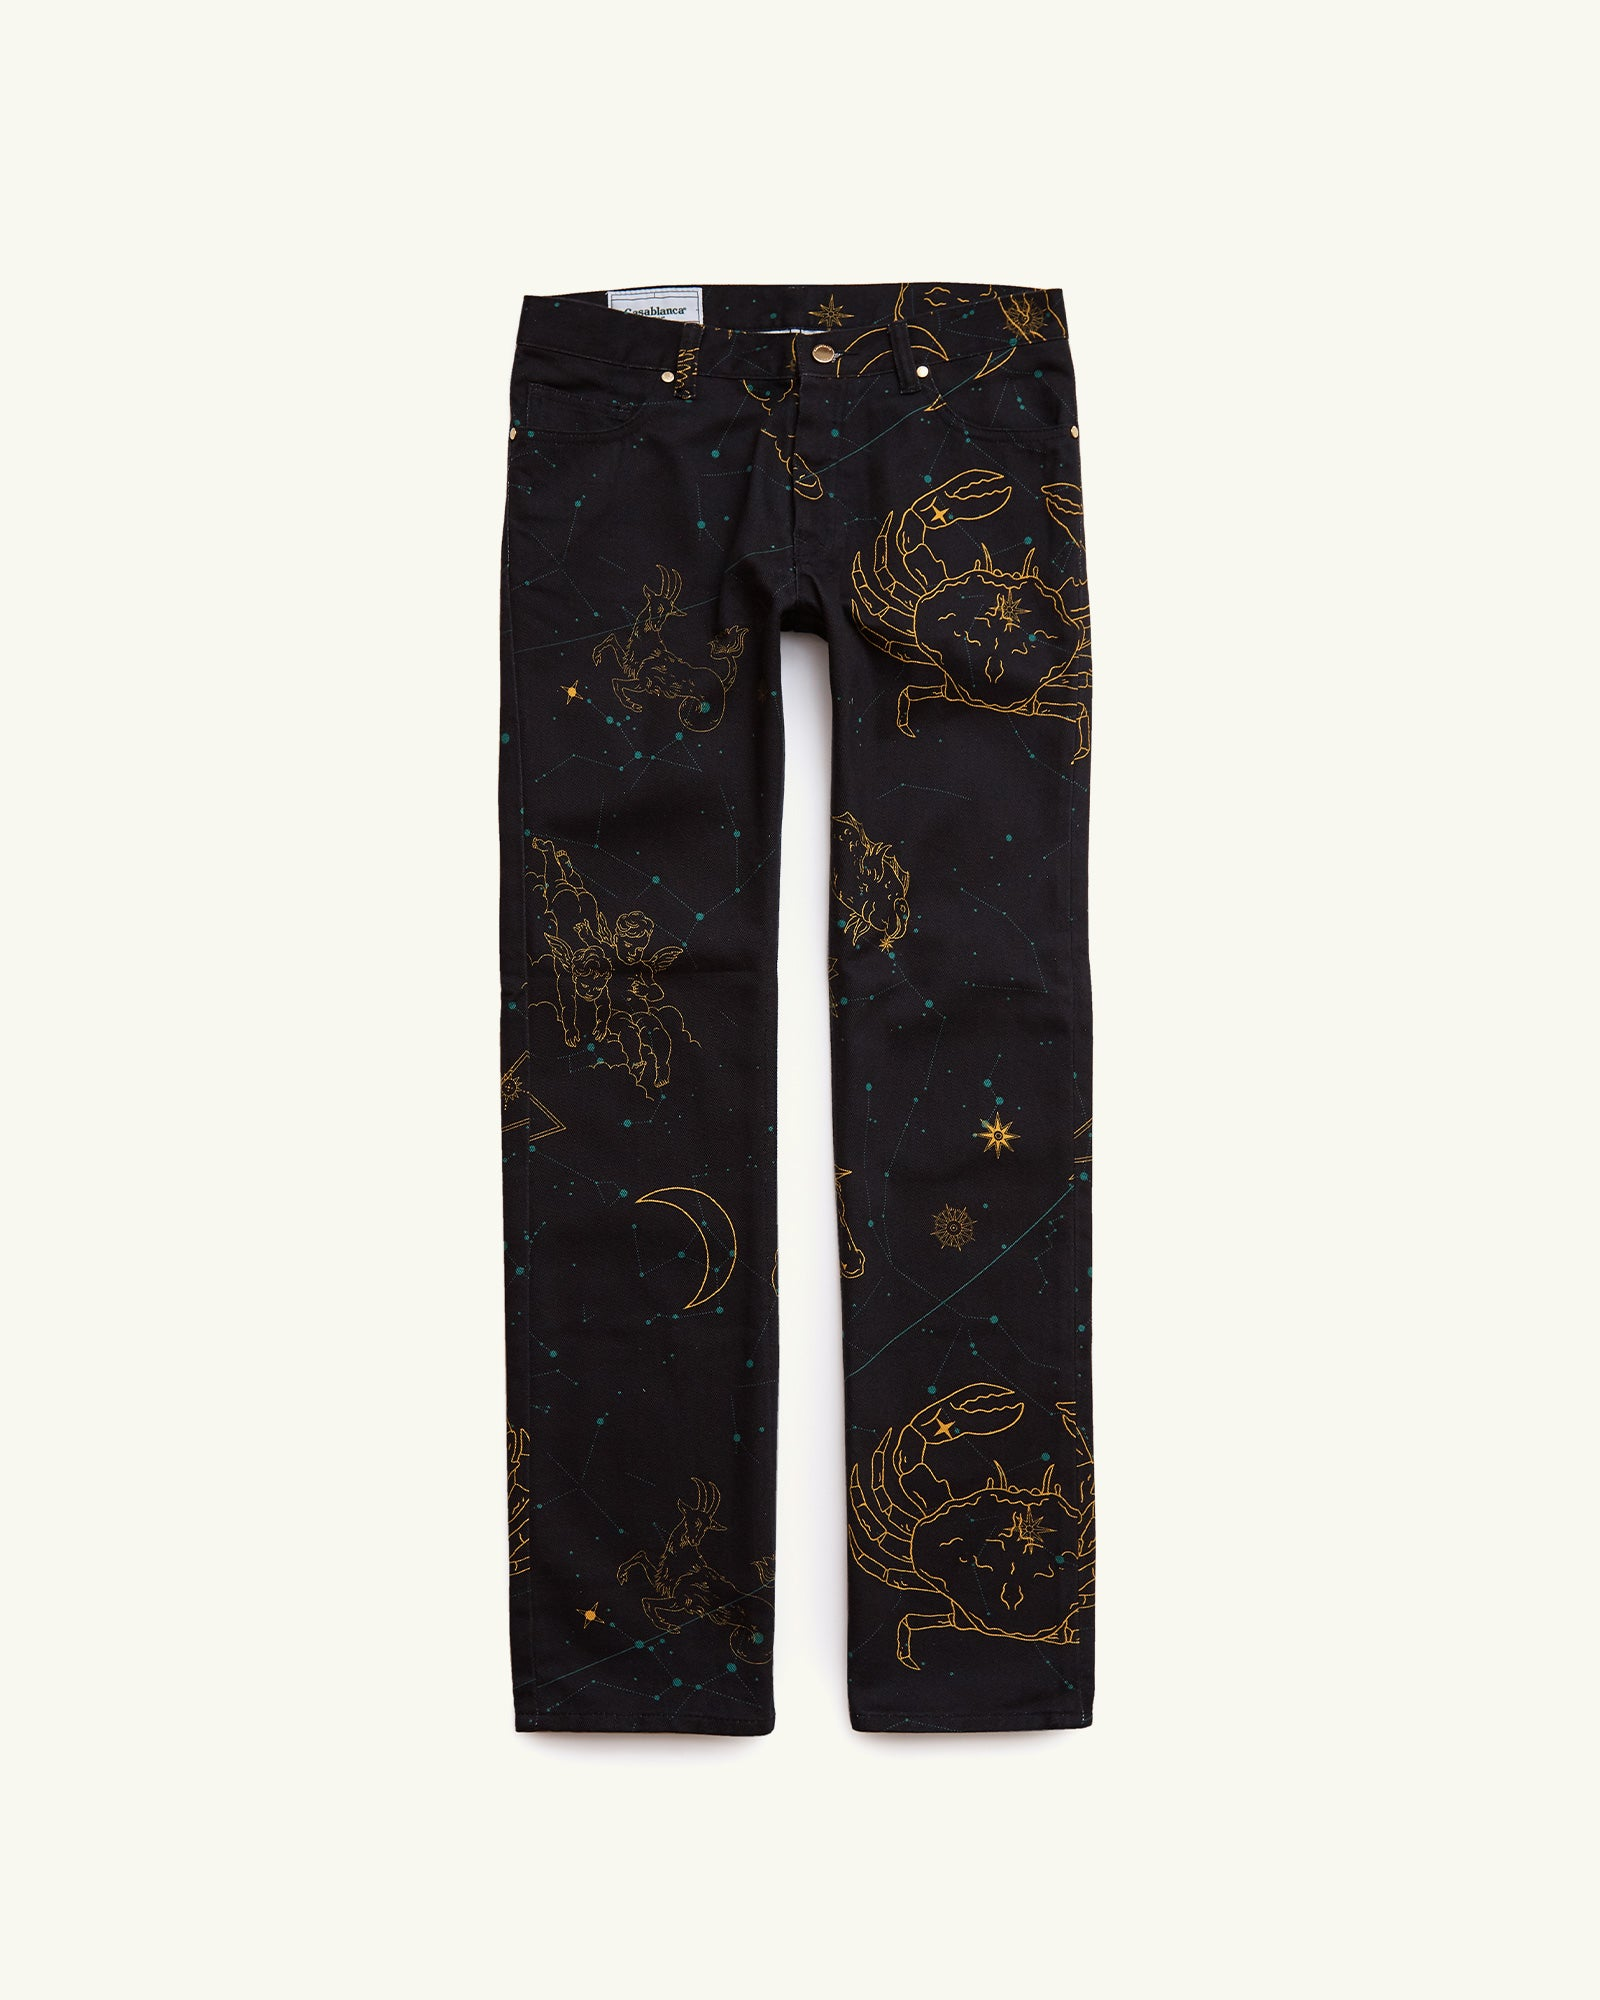 PRINTED DENIM JEANS CONSTELLATION NAVY